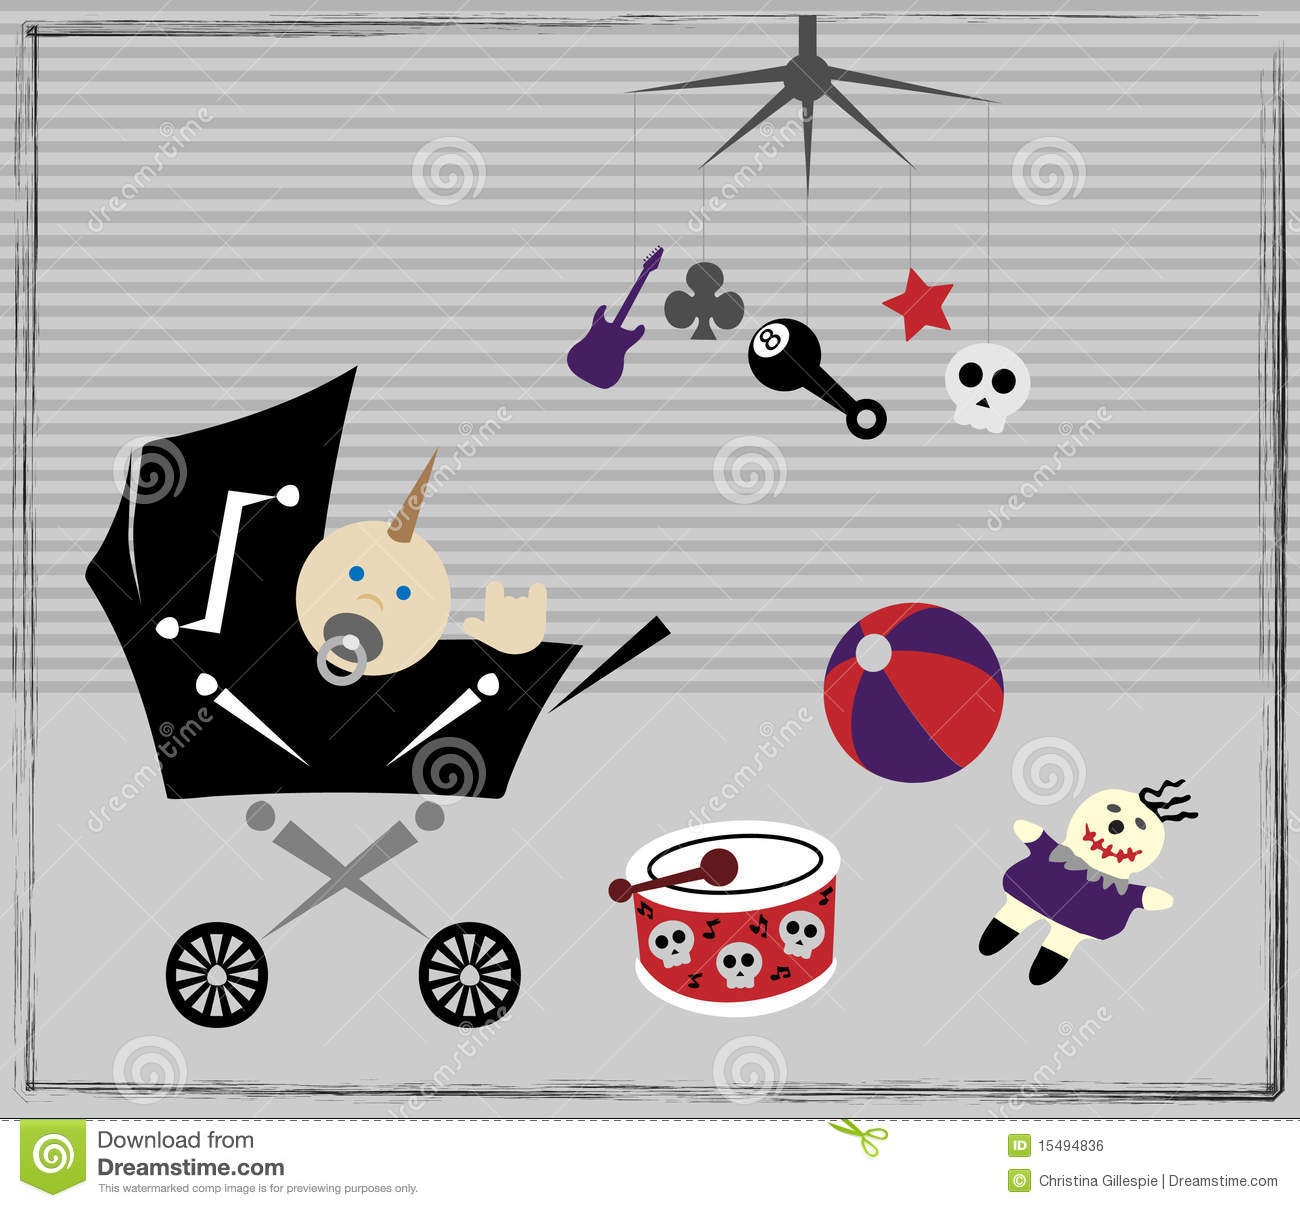 Jamie Bell Inch Doting Daddy Spends Quality Time Son Ahead Release Fantastic Four also Followme Tandem Coupling also Lebron James And Savannah Brinson Wel e A Baby Girl in addition Orbit Baby Sidekick Stroller Board together with Stickers Etoiles Constellation 42 X 30 Cm Art For Kids Bleu. on 5 in 1 stroller